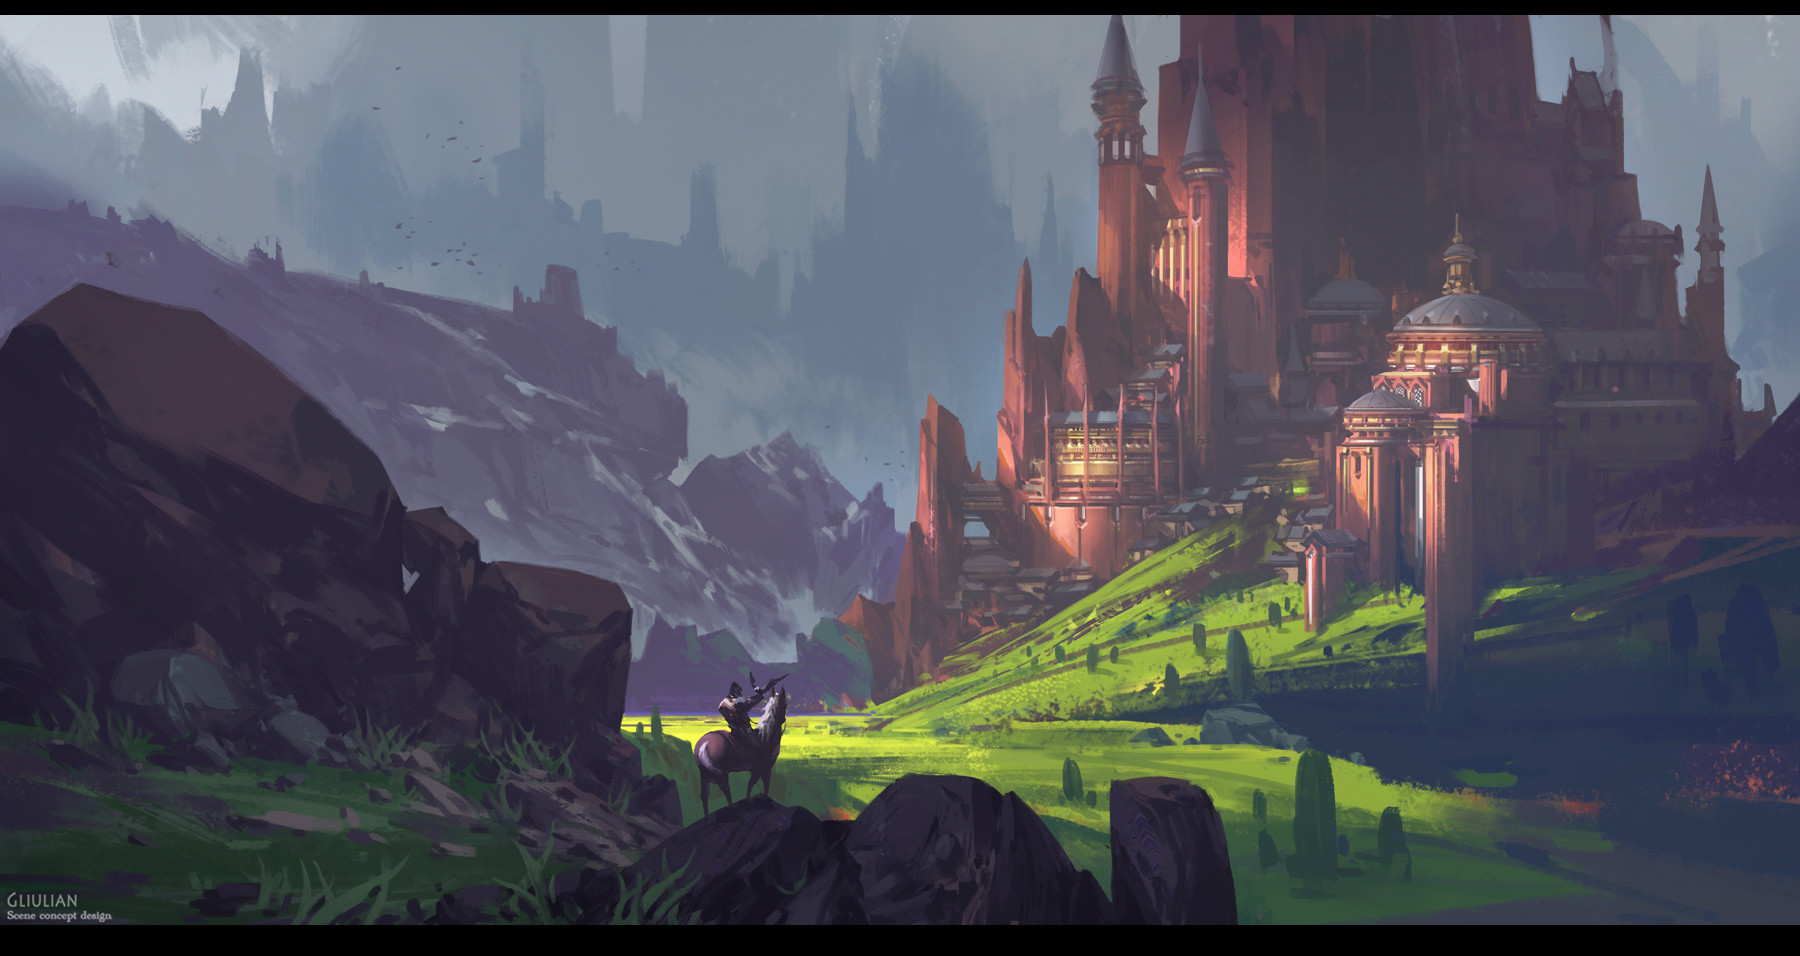 G Liulian digital painting concept art red castle green